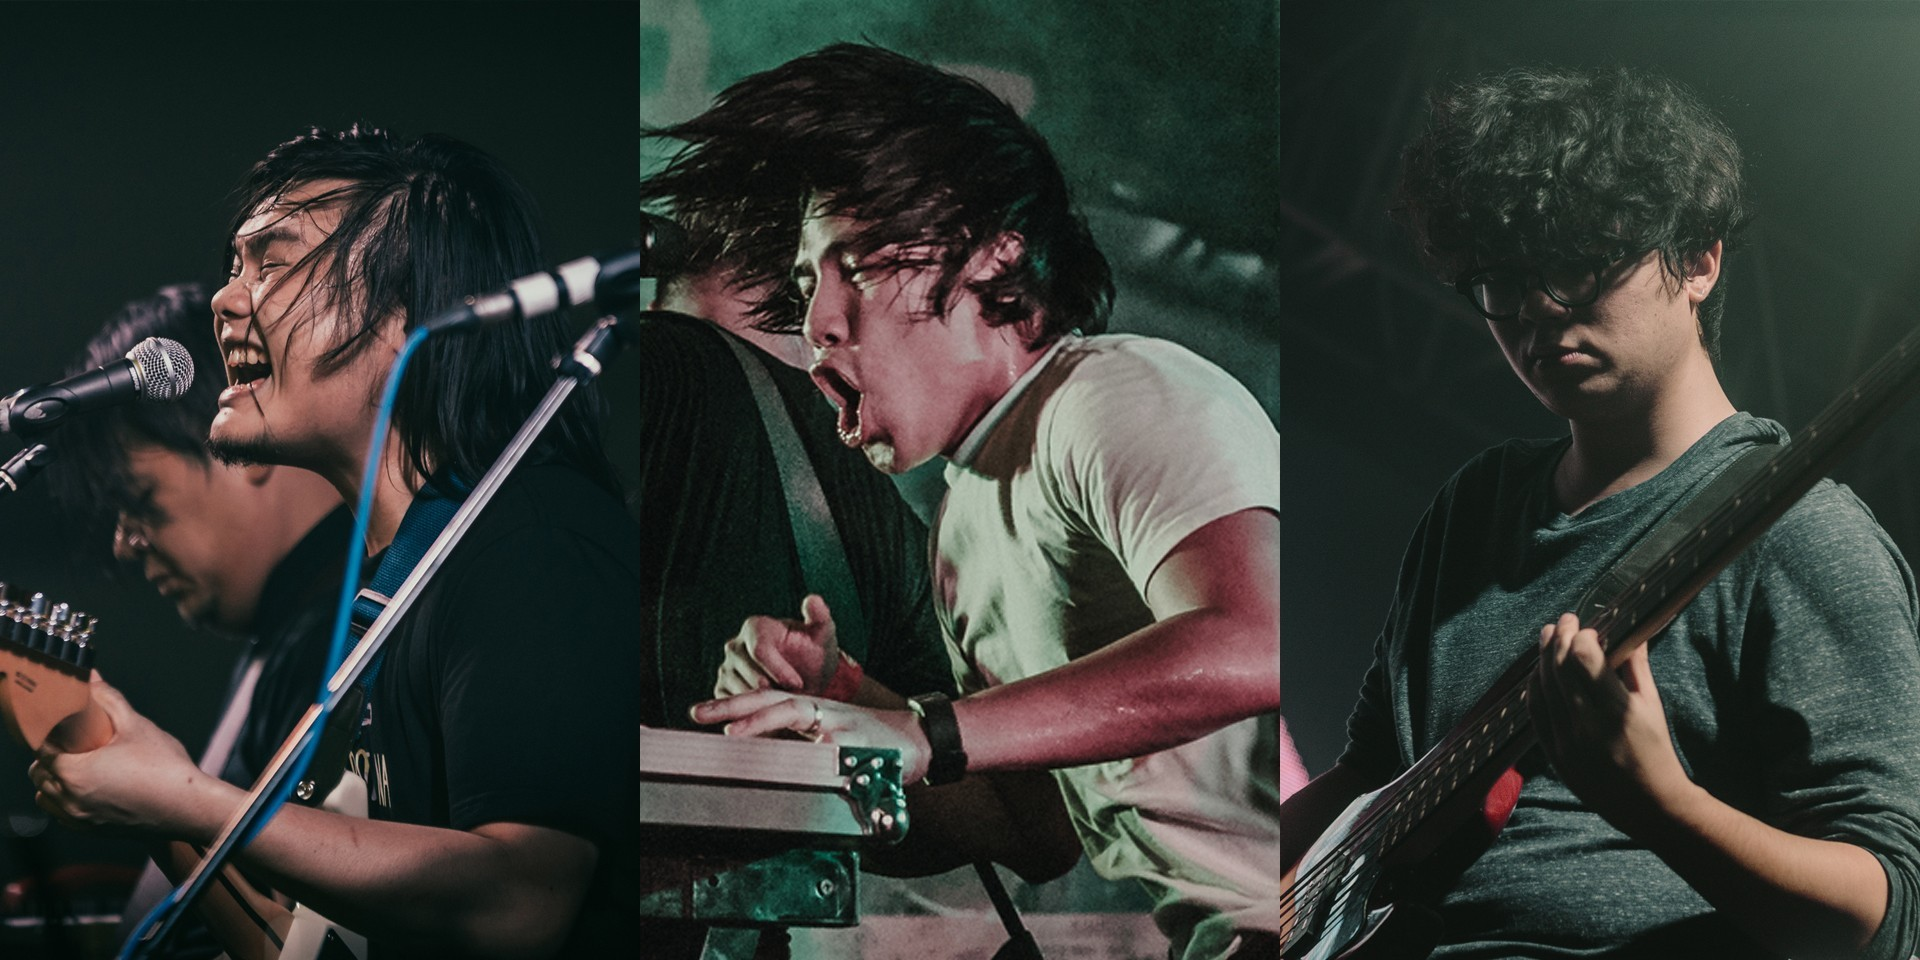 Autotelic, Cheats, Tom's Story, and more to play at Linya-Linya Night